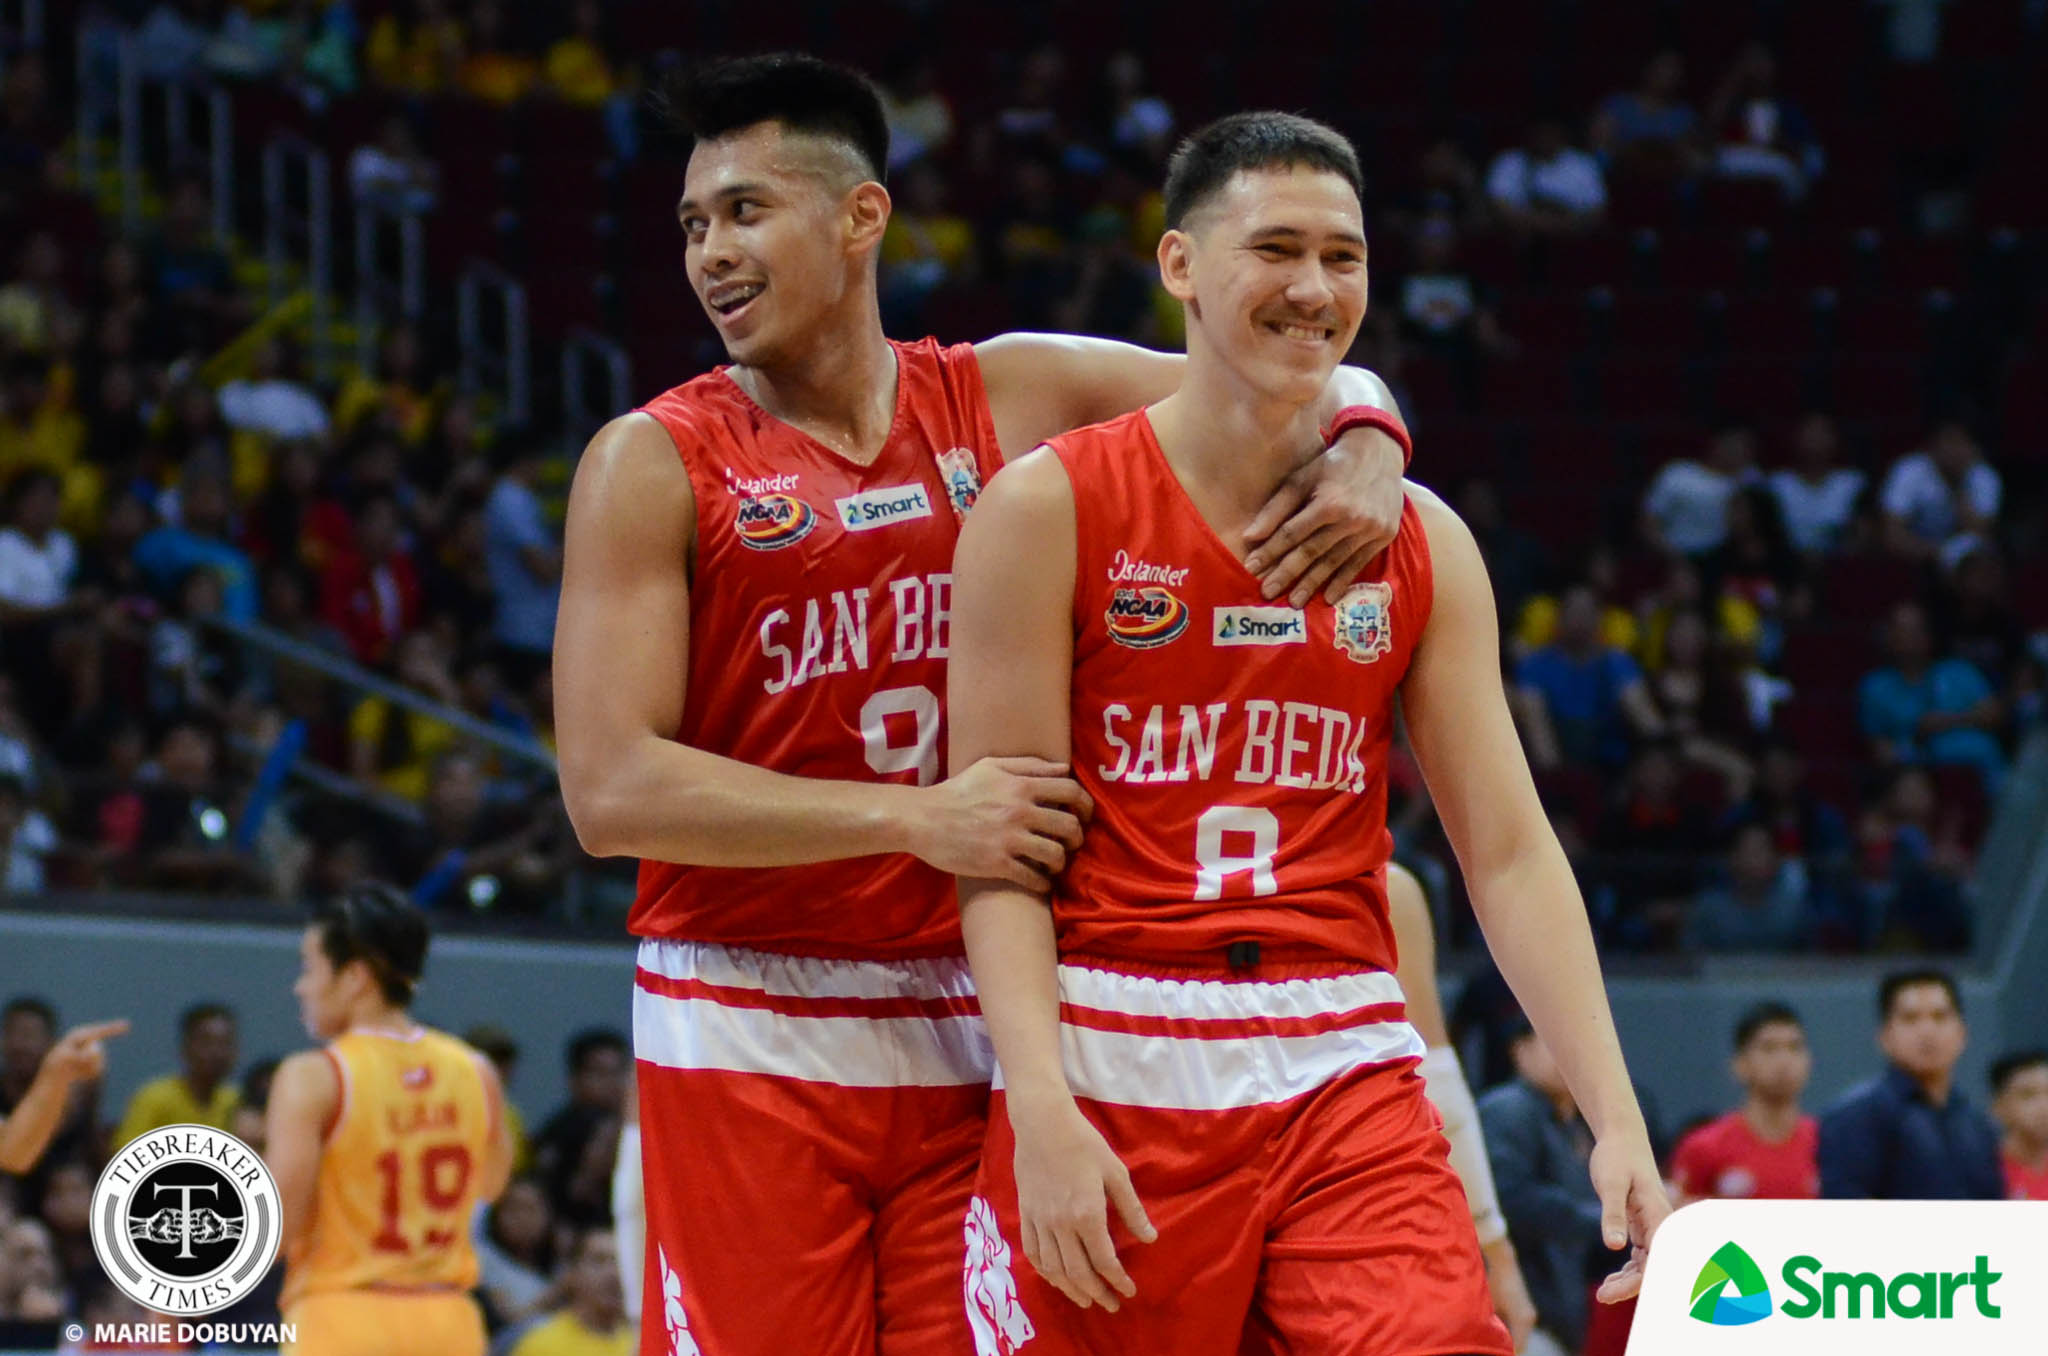 Tiebreaker Times San Beda duo enters Draft Basketball News PBA  Robert Bolick PBA Season 44 Javee Mocon 2018 PBA Draft